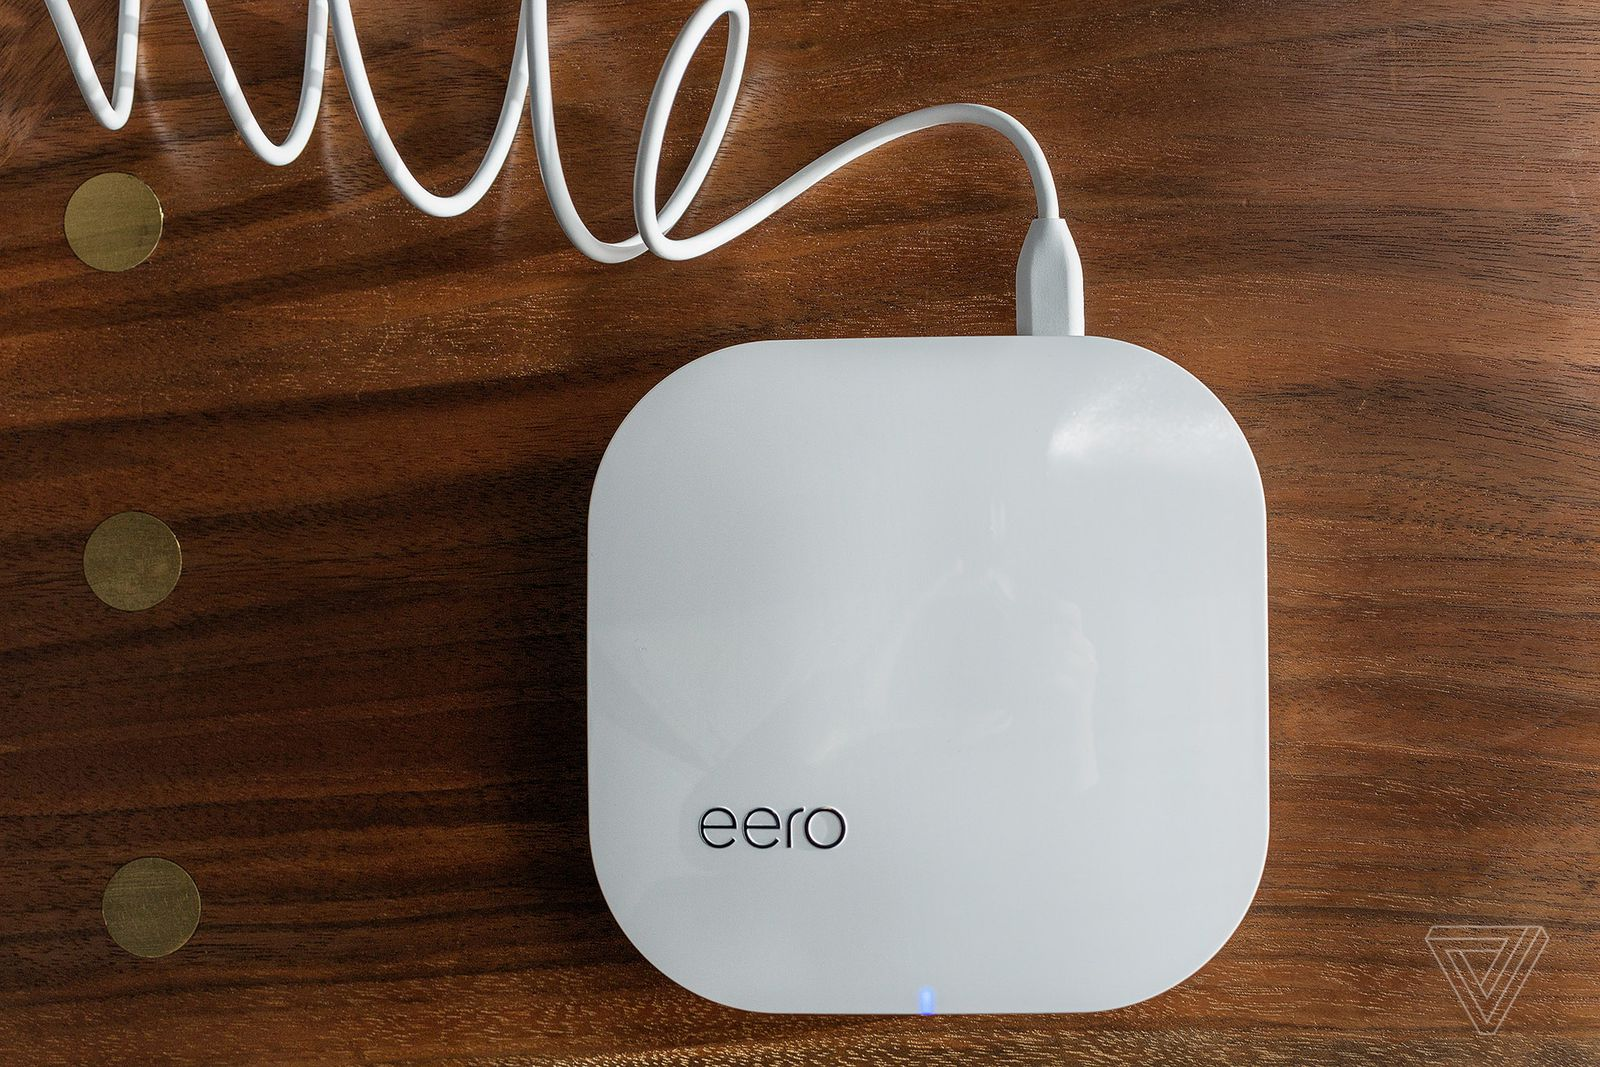 The gen 2 Eero base station